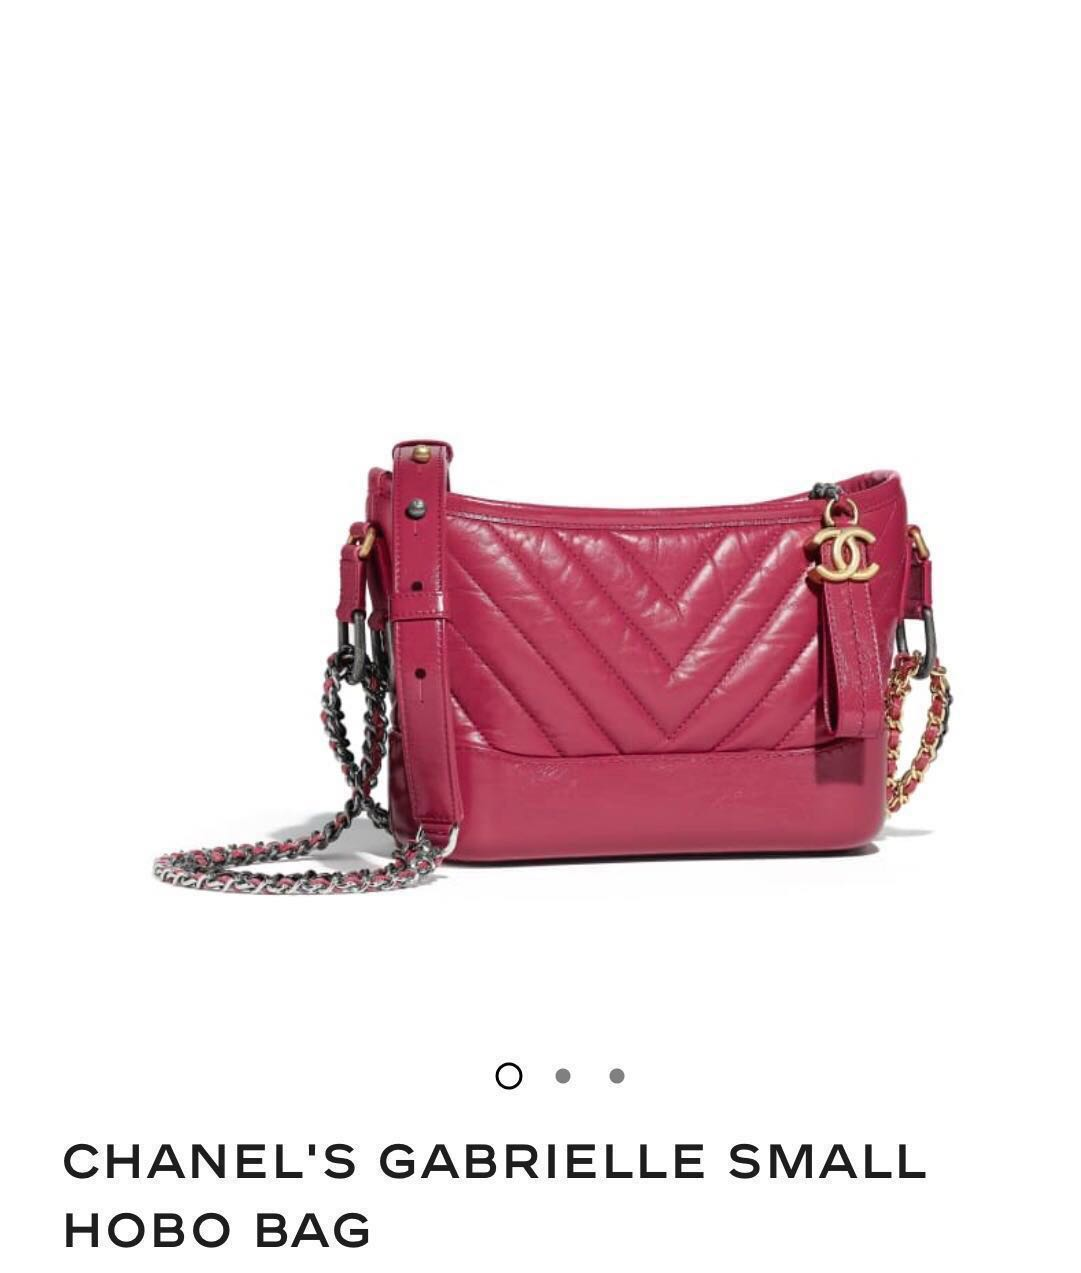 865cc03545f Chanel Gabrielle Bag, Luxury, Bags & Wallets, Handbags on Carousell